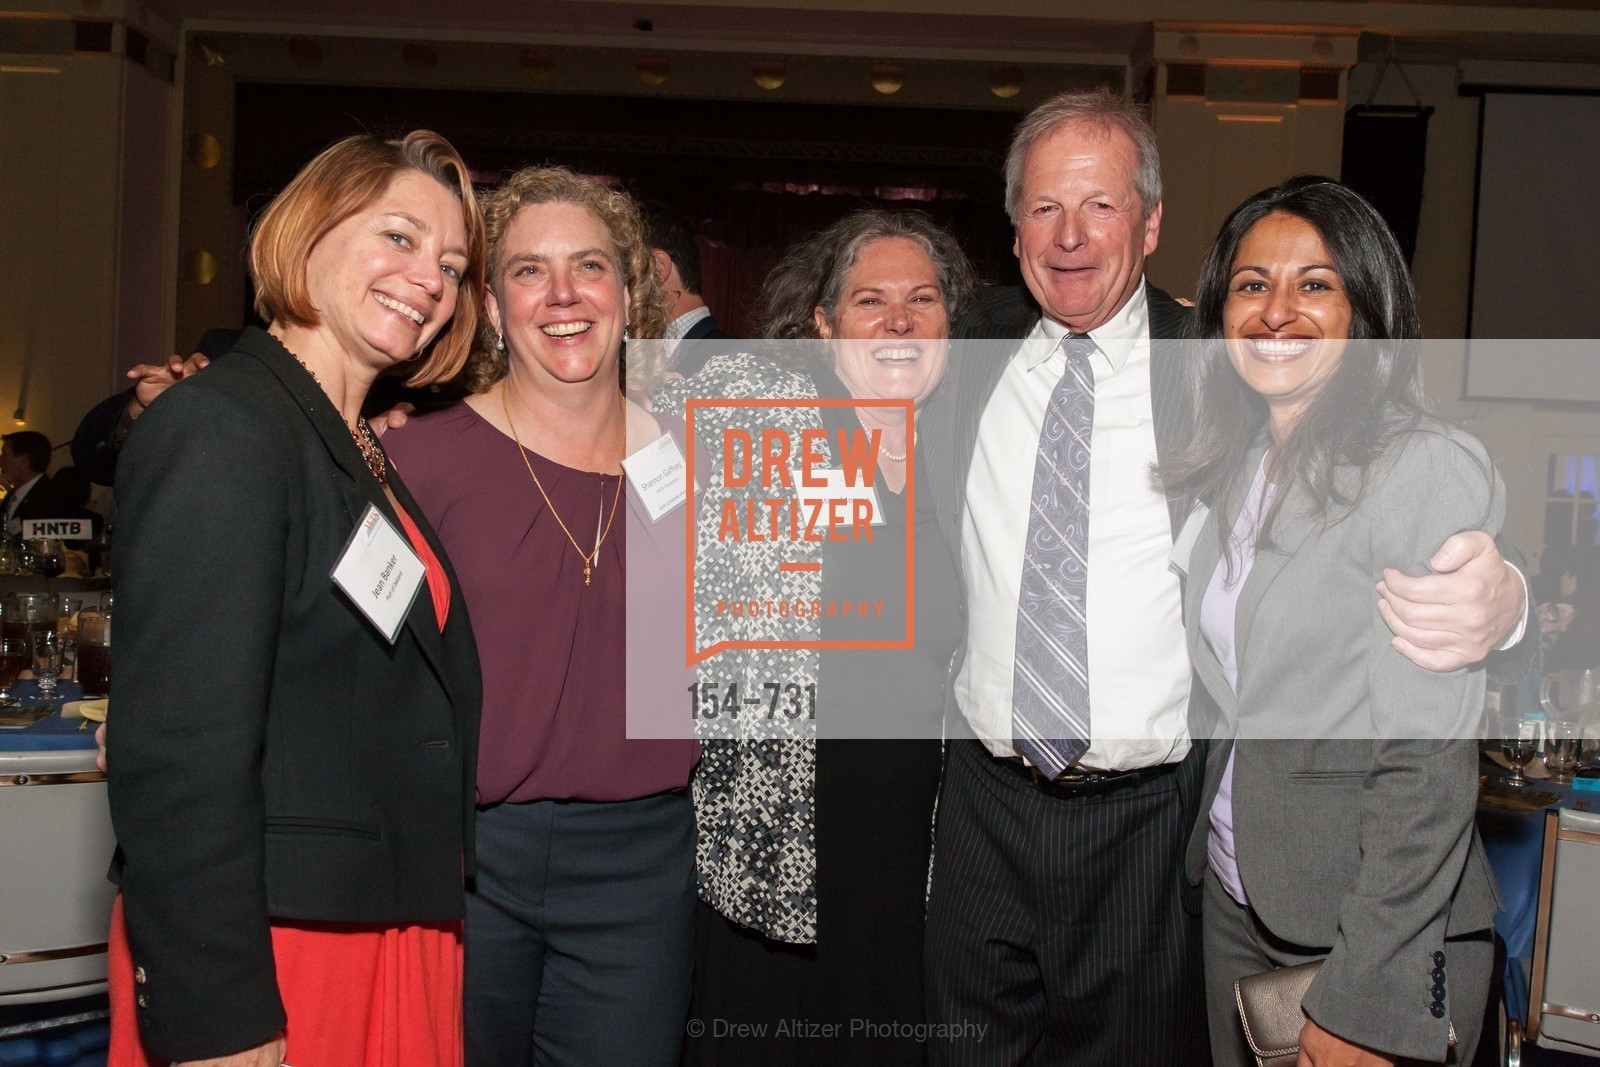 Jean Banker, Shannon Gaffney, Christine Monsen, Mark Green, Charisse Frank, WOMEN'S TRANSPORTATION SEMINAR SF Bay Area Chapter Annual Scholarship Awards, US, May 15th, 2015,Drew Altizer, Drew Altizer Photography, full-service agency, private events, San Francisco photographer, photographer california